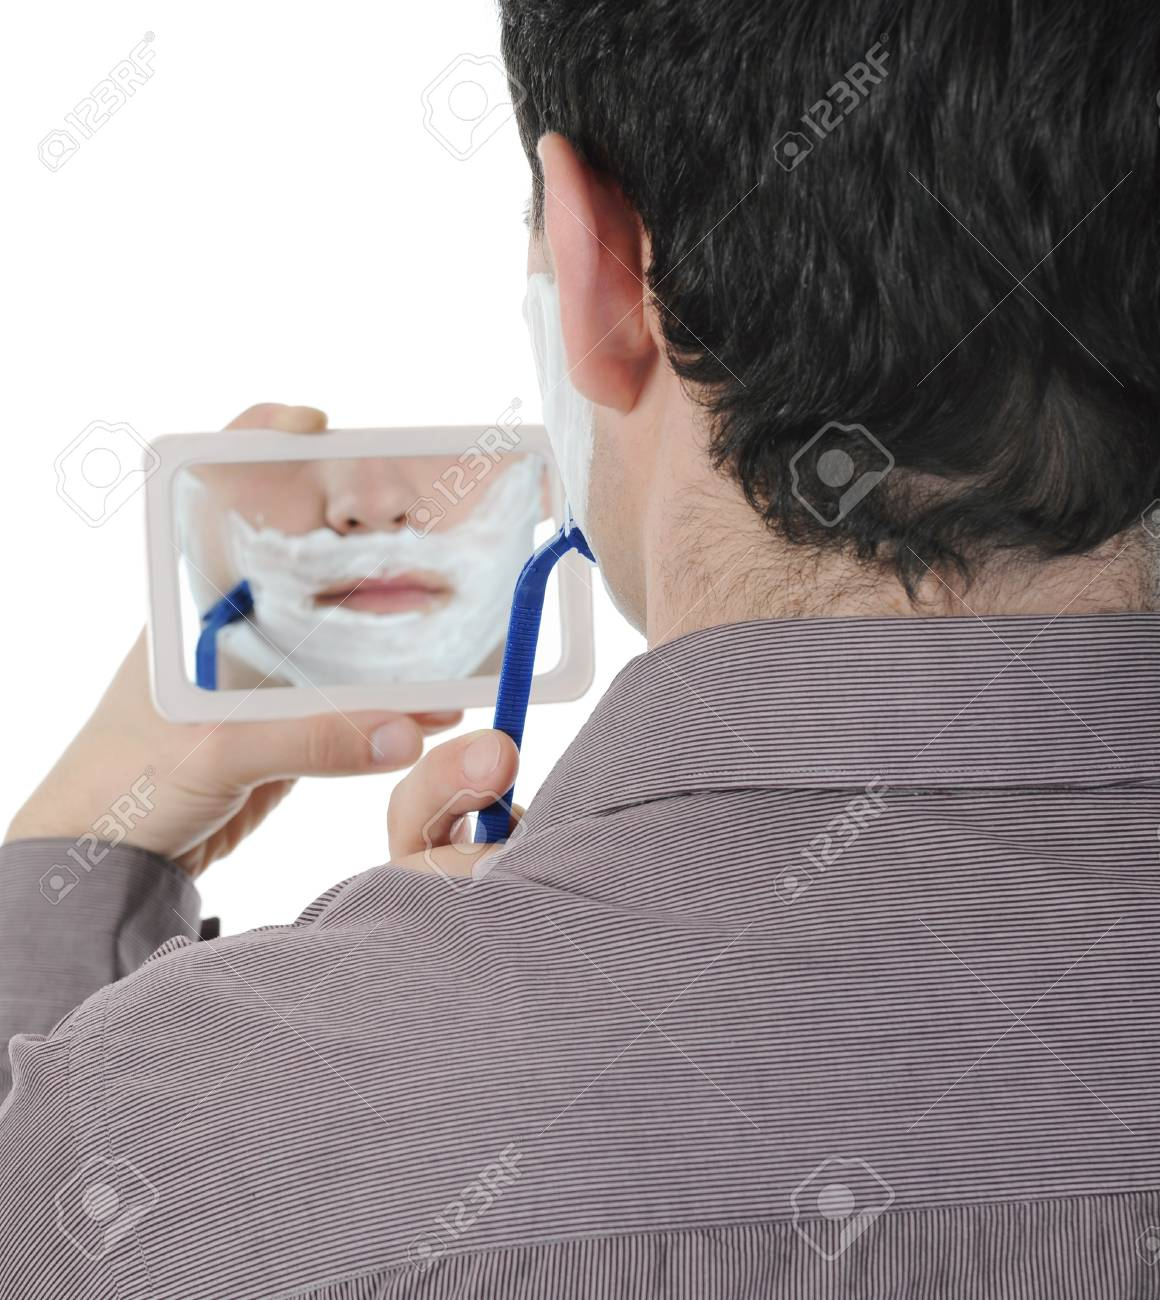 Young man shaving at the mirror. Isolated on white background Stock Photo - 8596829